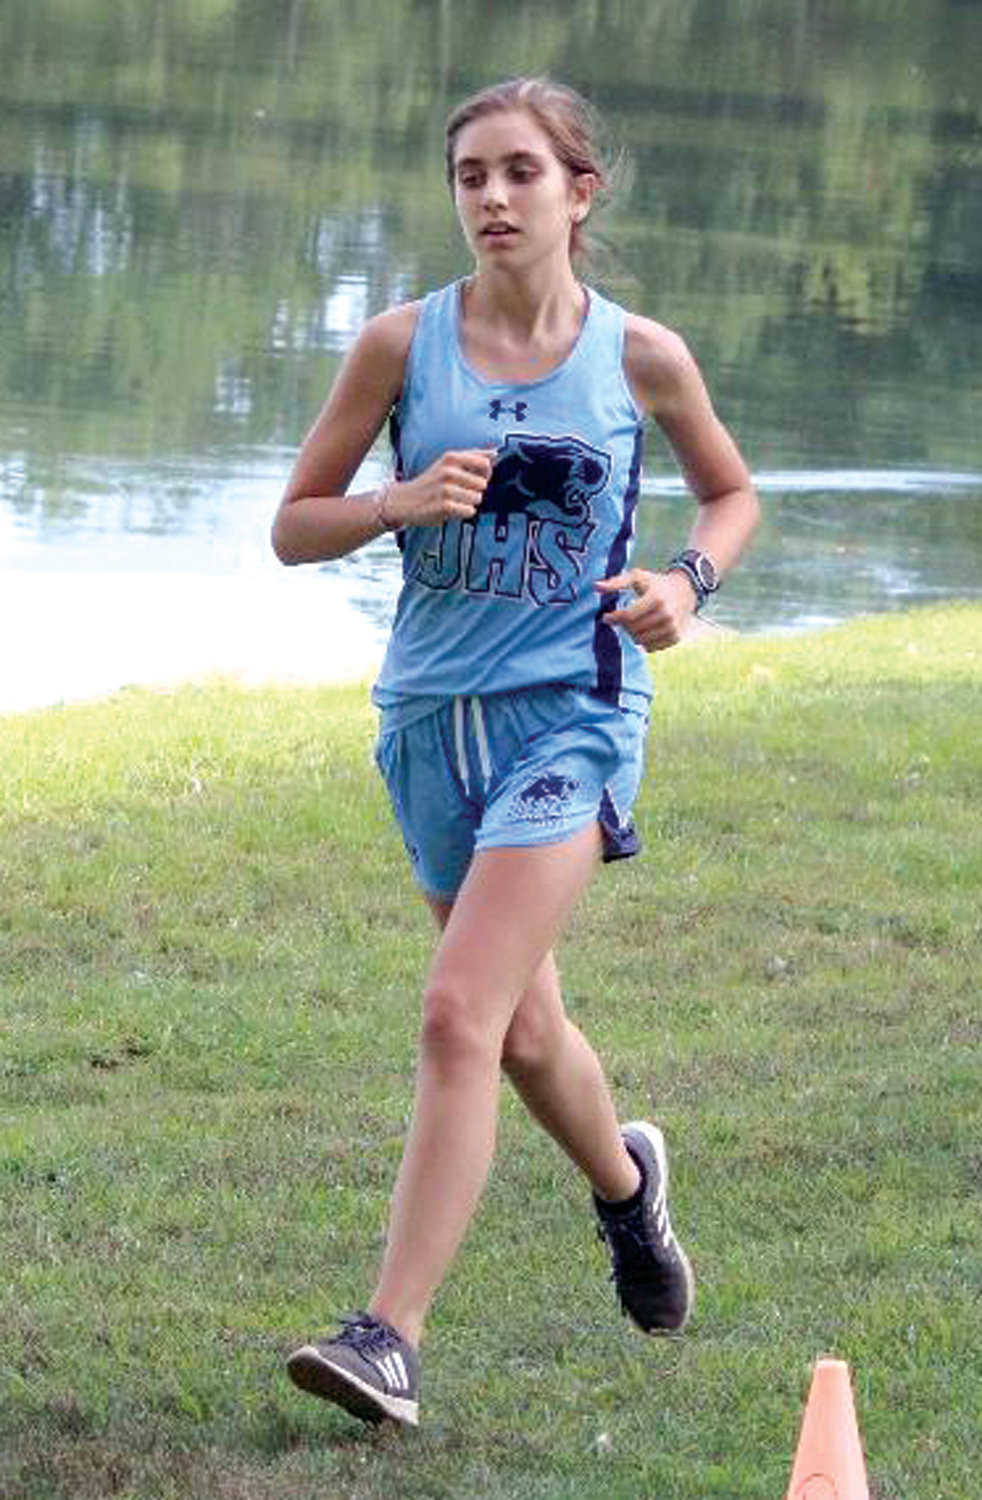 STAYING THE COURSE: Johnston's Audrey Mahoney at Monday's meet.